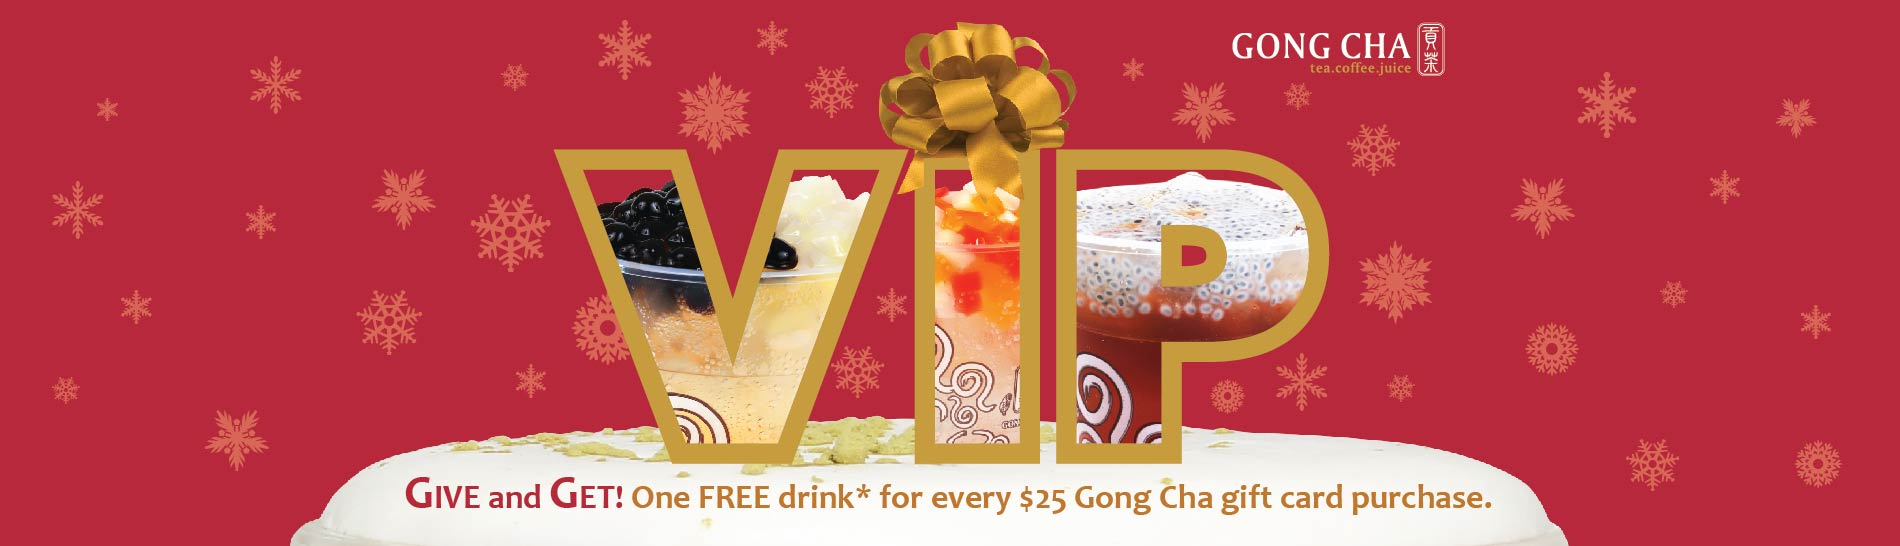 VIP Give and Get! One FREE drink for every $25 Gong Cha gift card purchase.